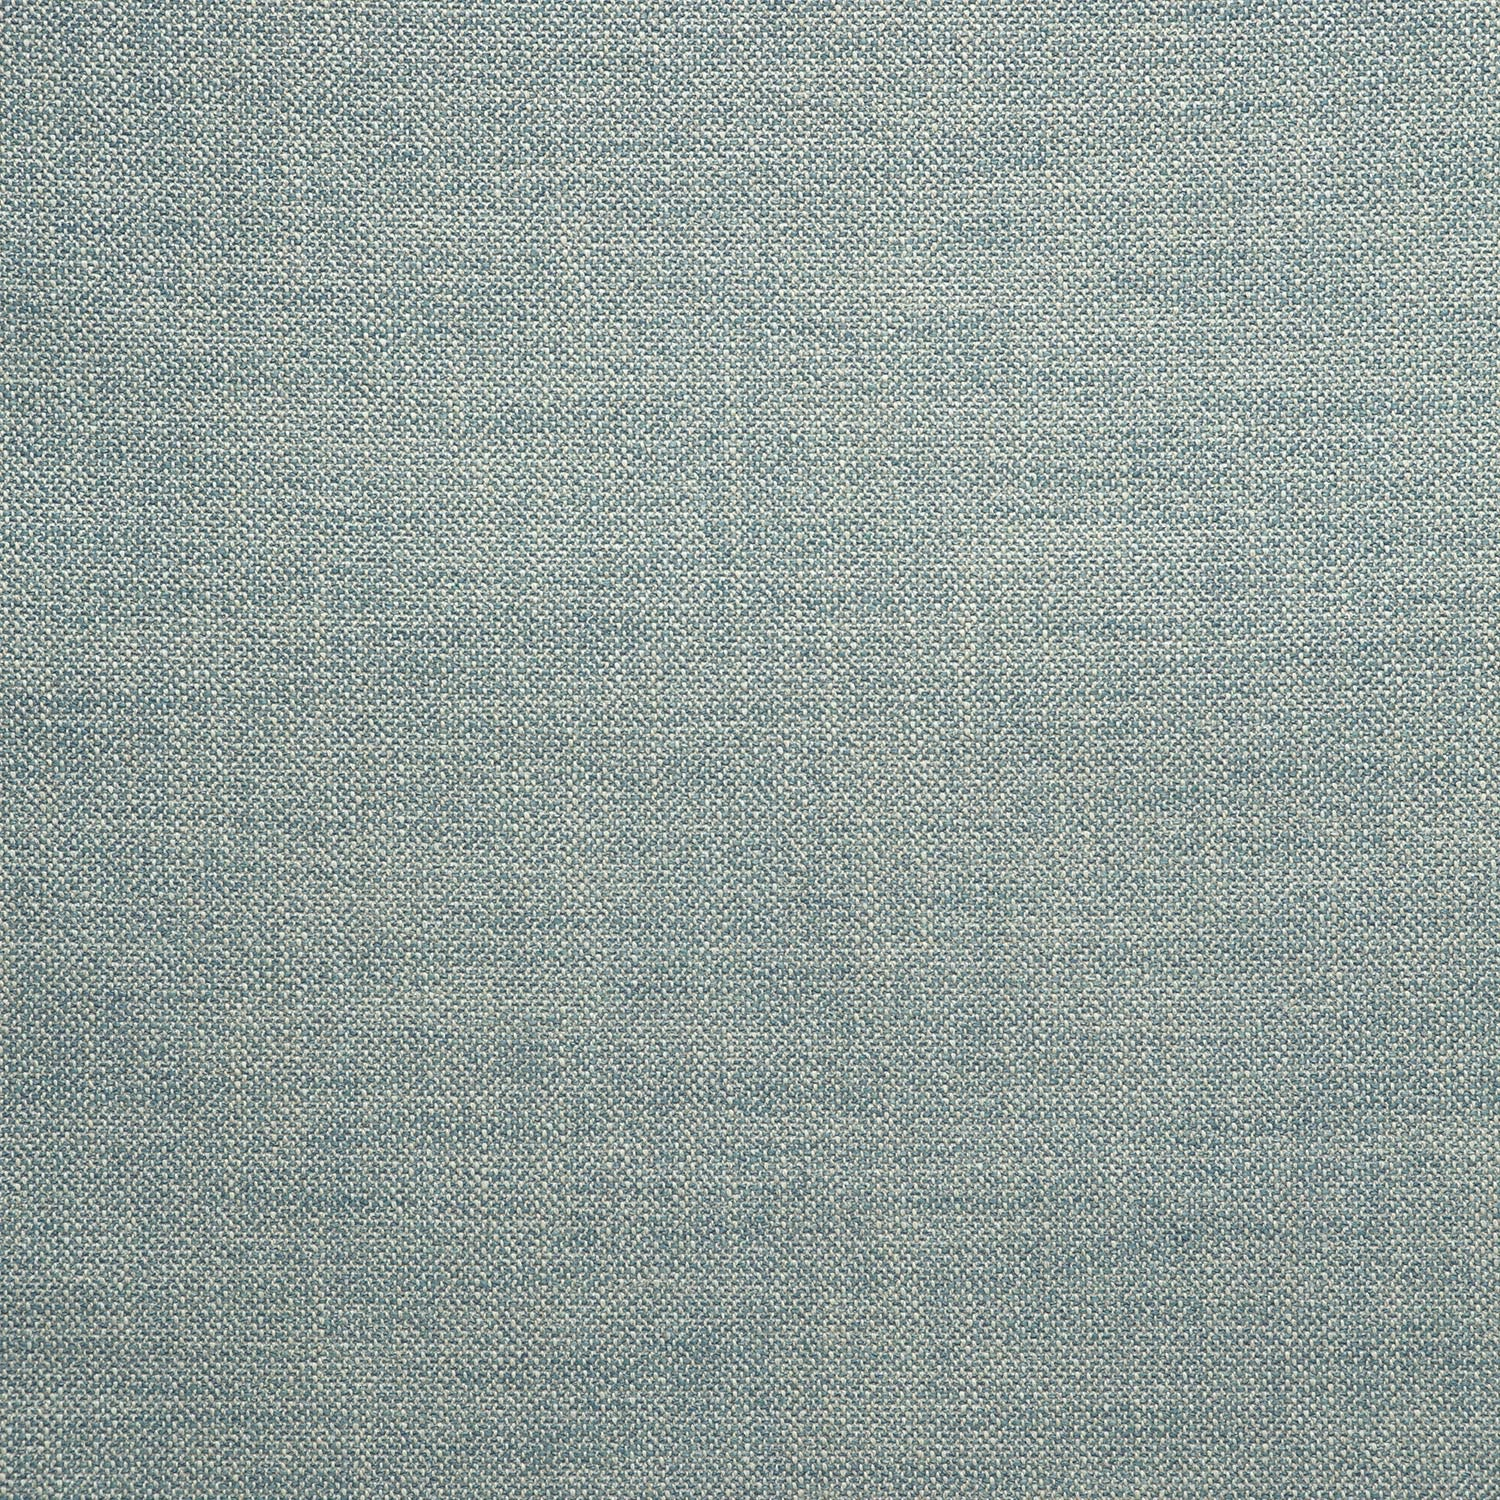 Fabric swatch of a plain blue weave fabric for upholstery